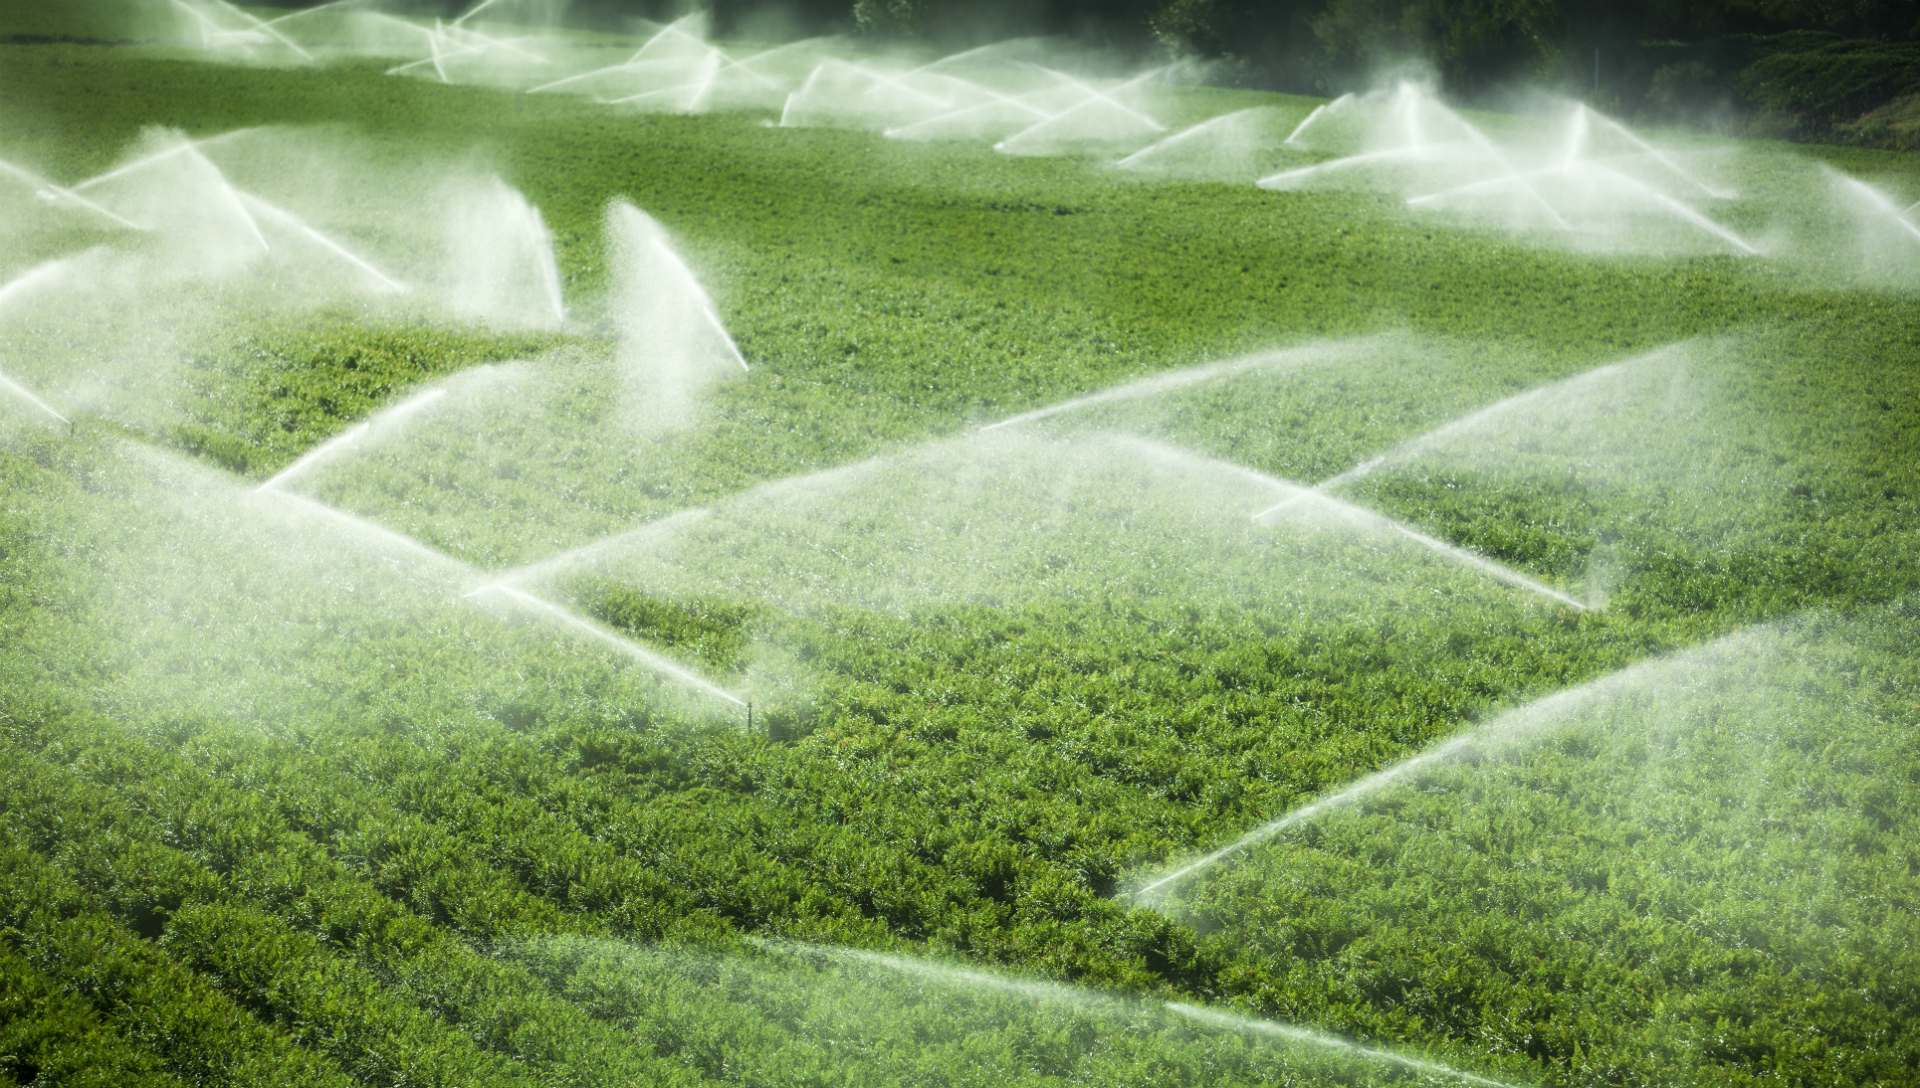 image of irrigation of field